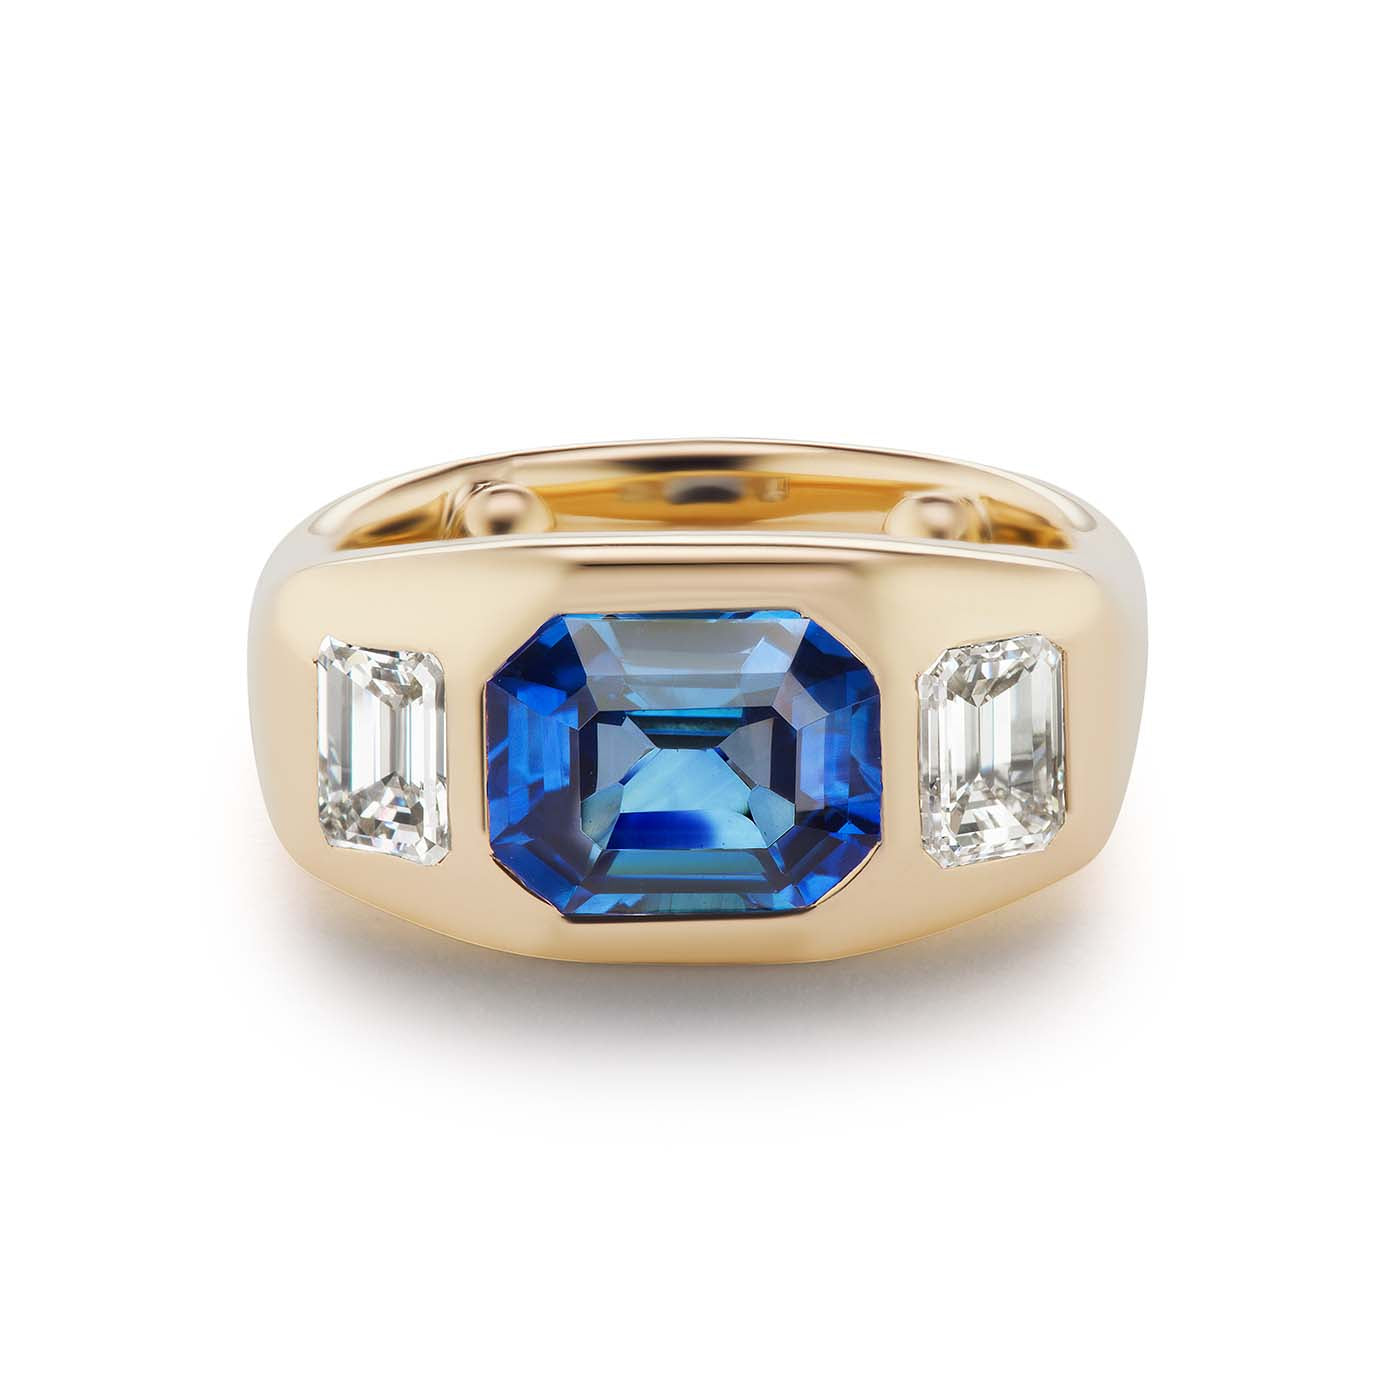 One-of-a-Kind Emerald Cut Sapphire Gypsy with Diamond Sides